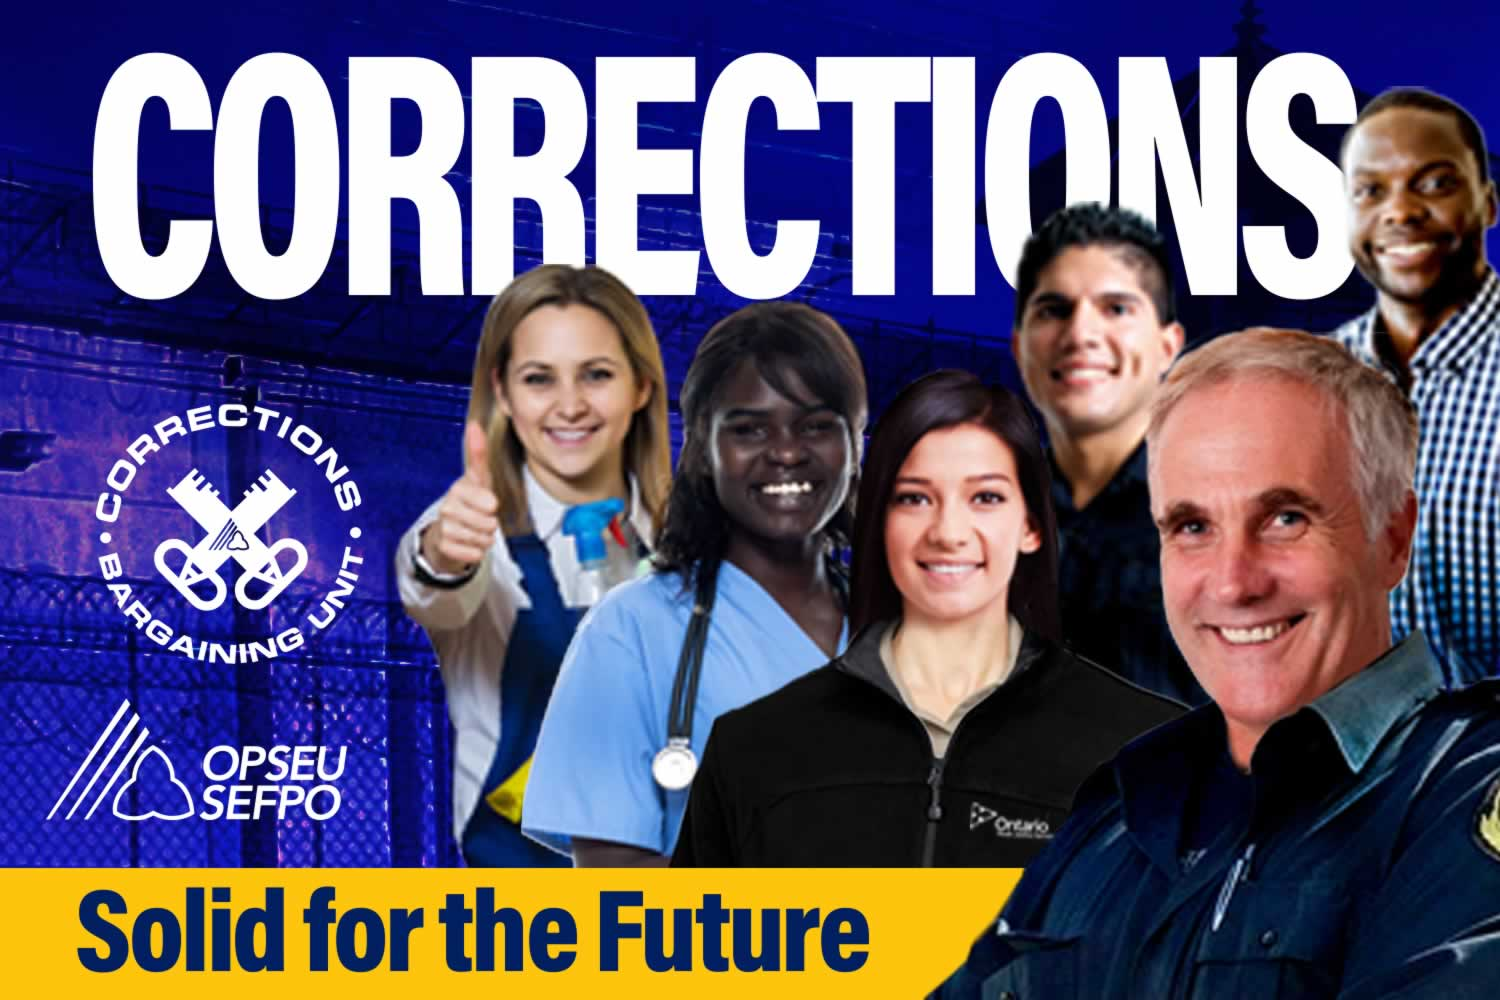 Marking the challenges and achievements of an extraordinary year for adult corrections